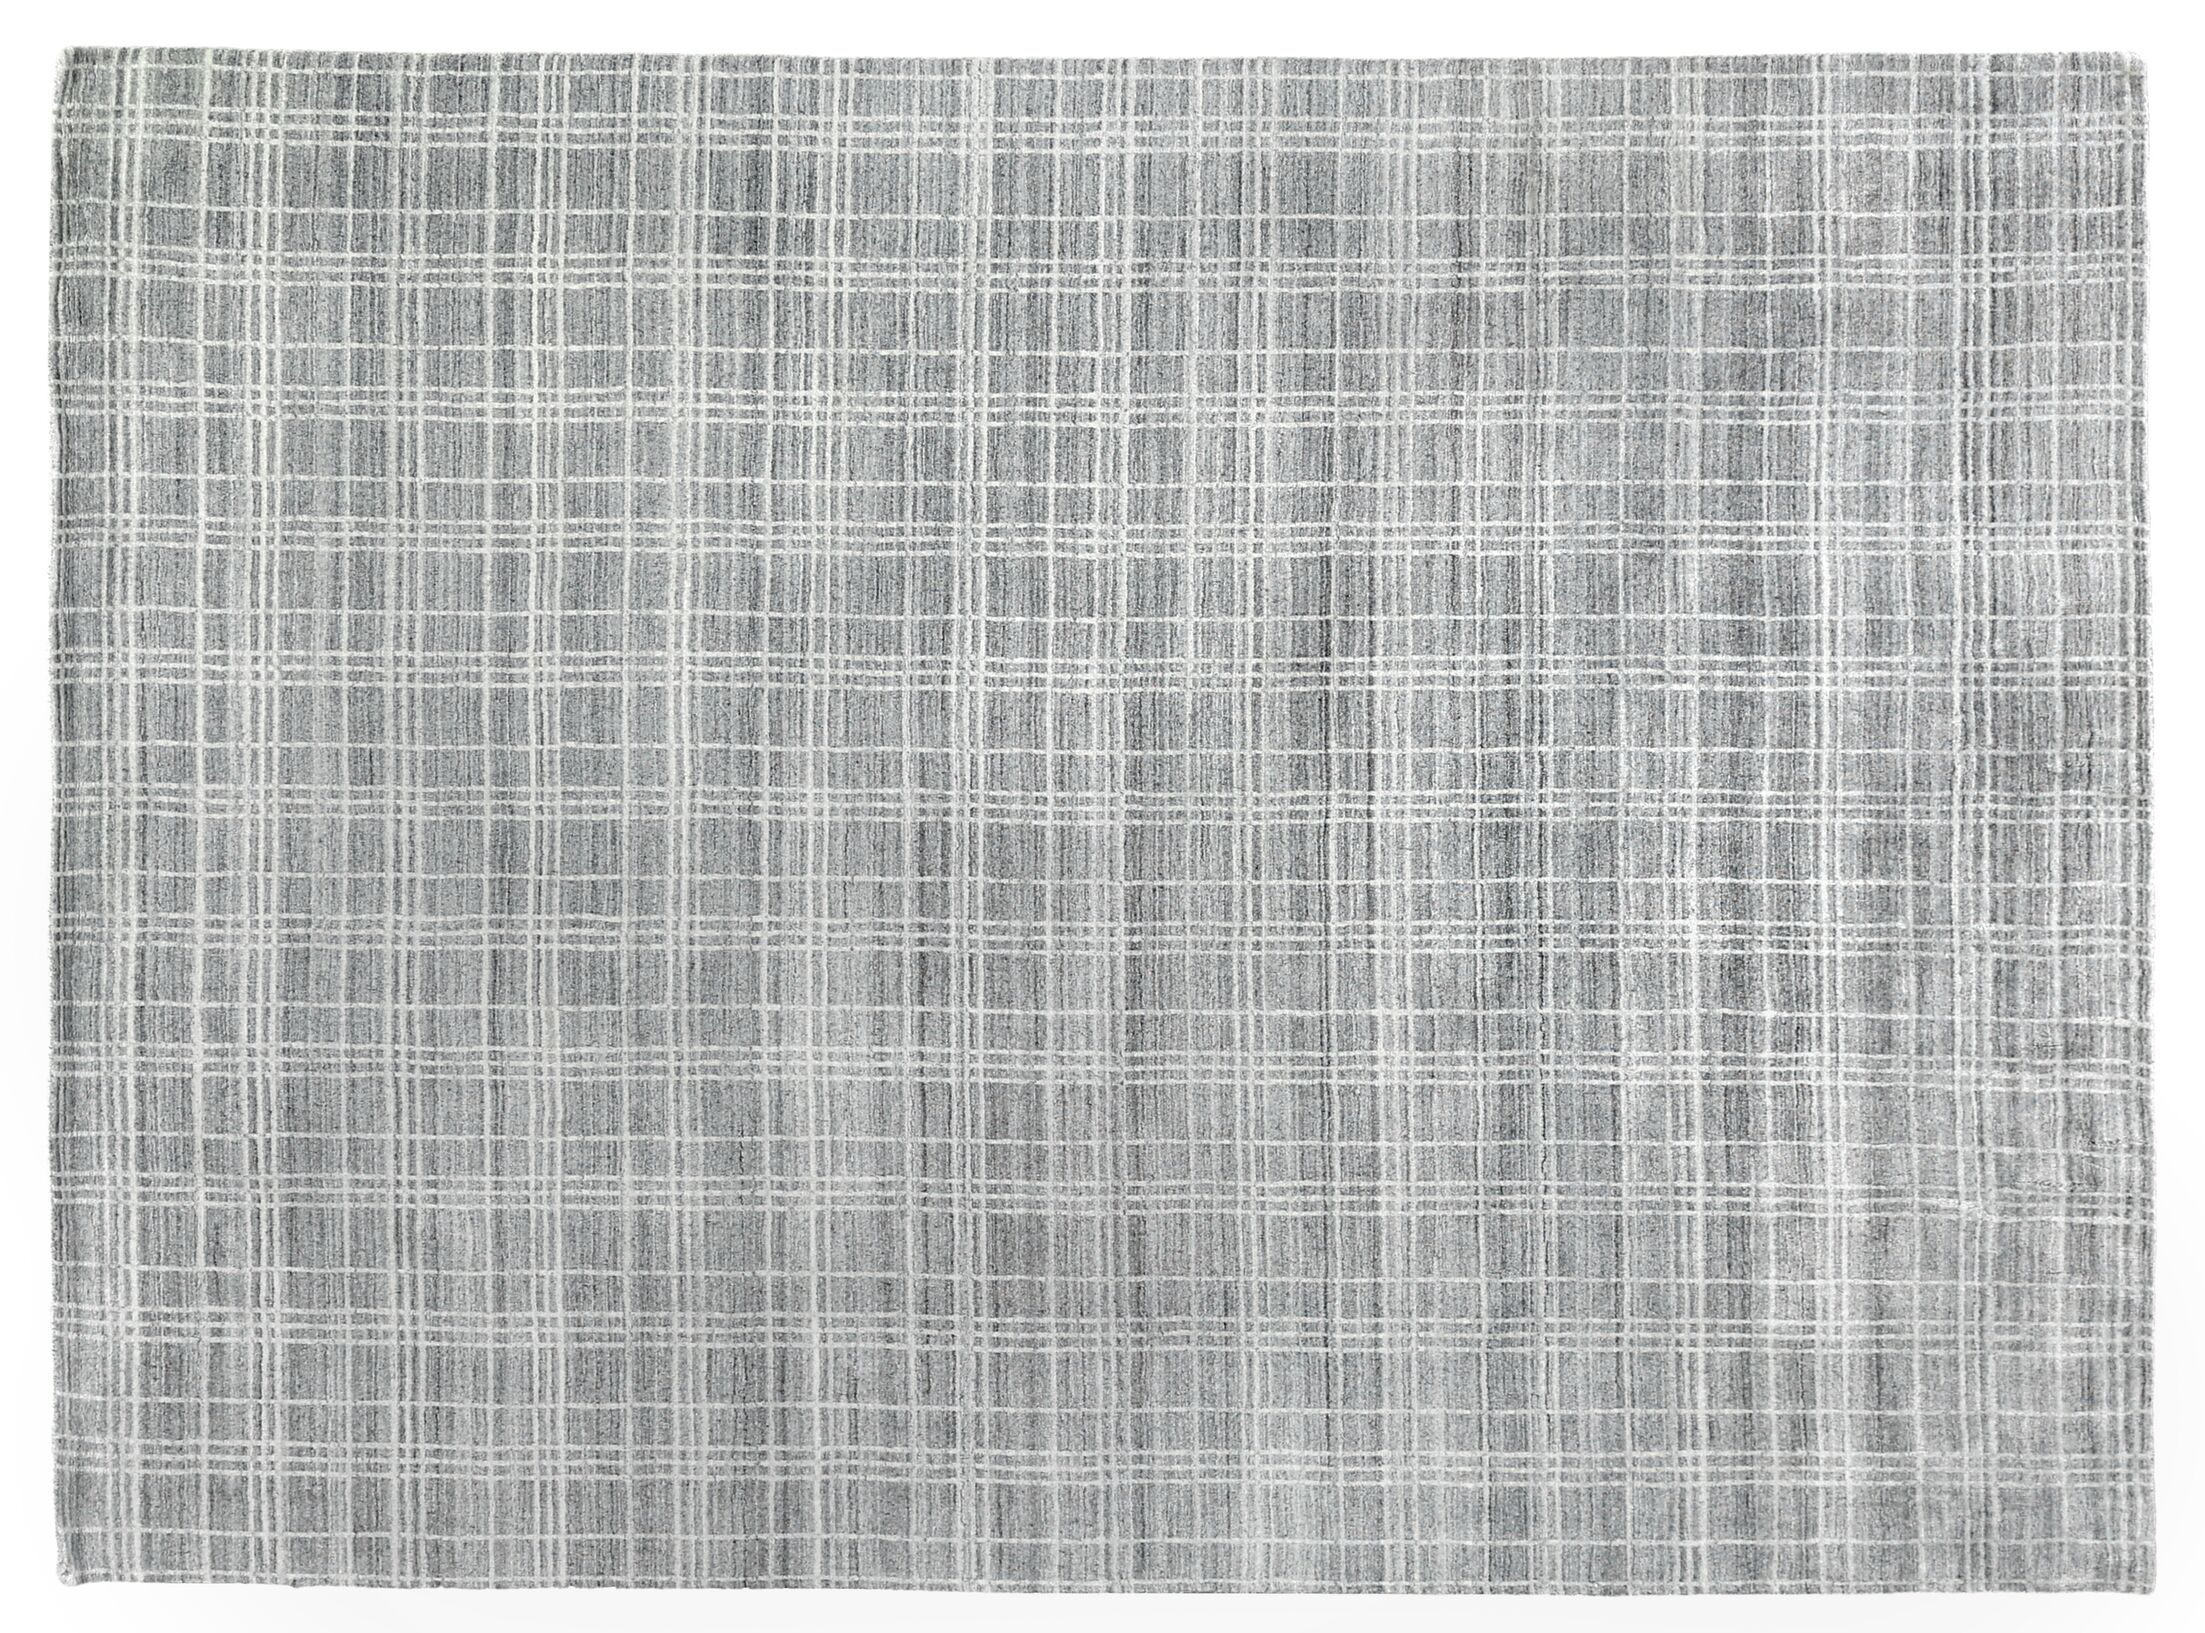 Fairbanks Hand-Woven Gray Area Rug Rug Size: Rectangle 14' x 18'